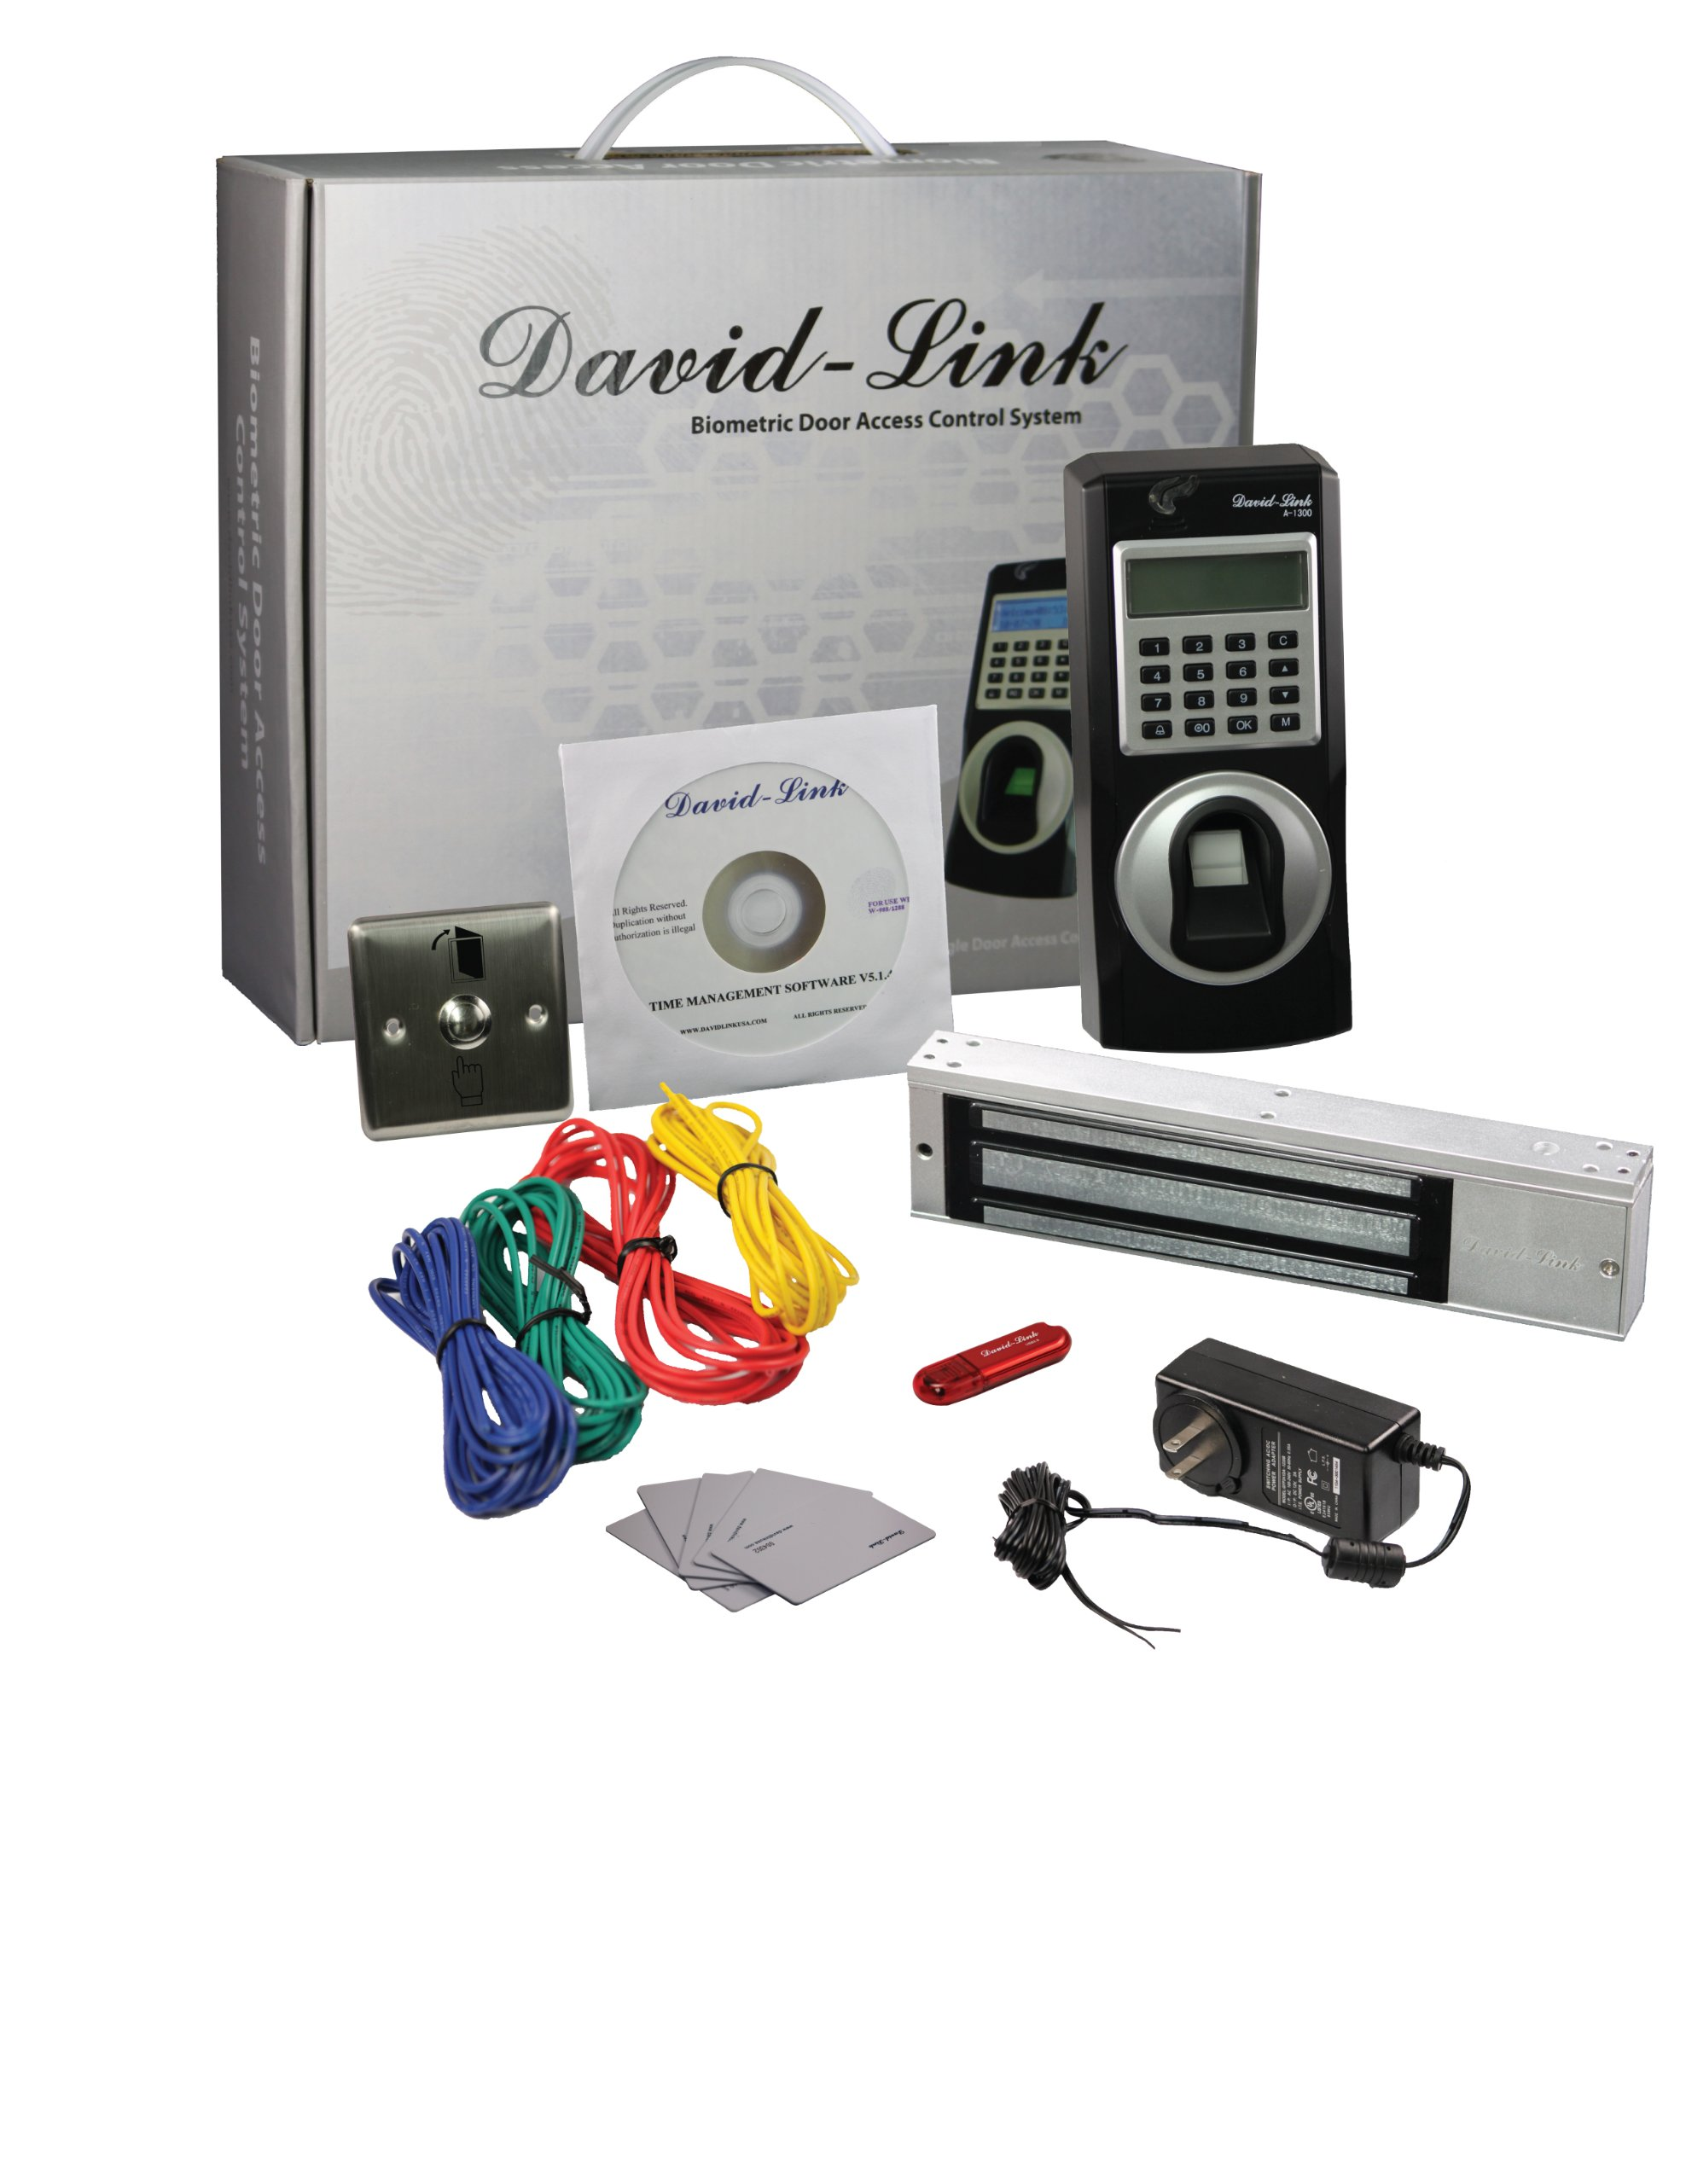 David-Link A-1300P Biometric A-1300 Access Control Starter Kit for Restricted Access Entrance, Temperature Range: 32 - 120 by David-Link